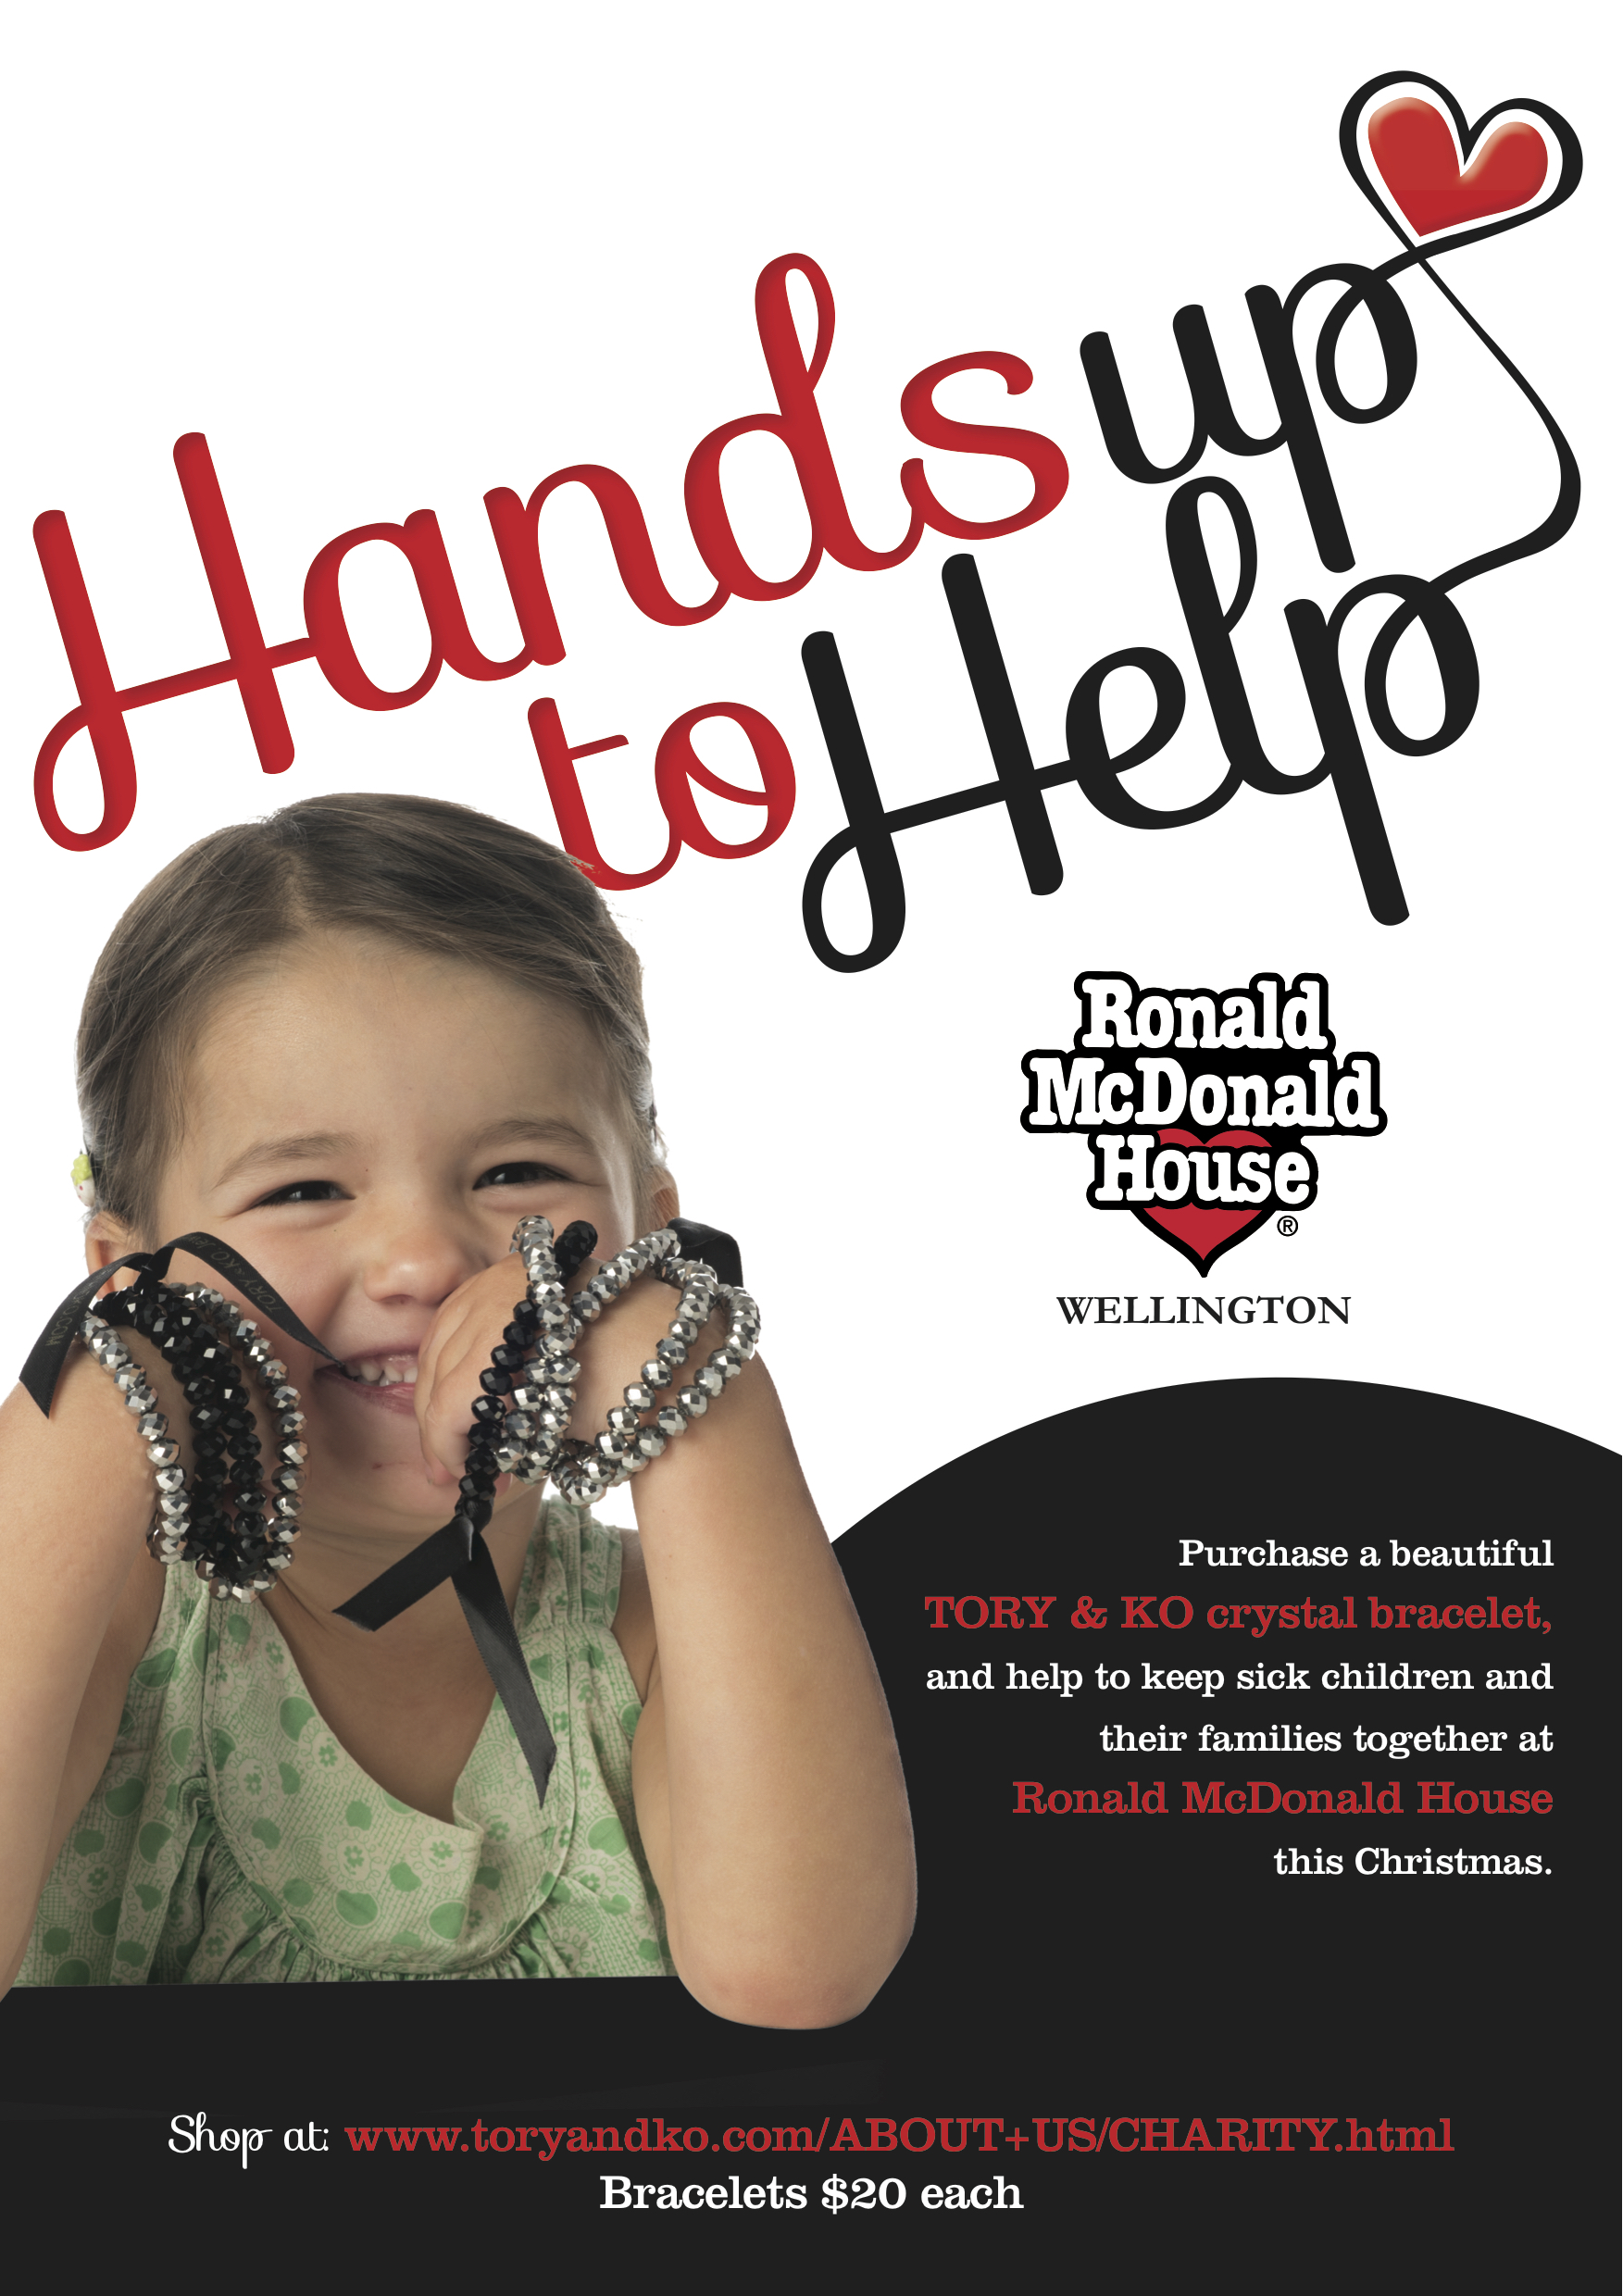 Ronald McDonald Hands up to Help Poster.jpg